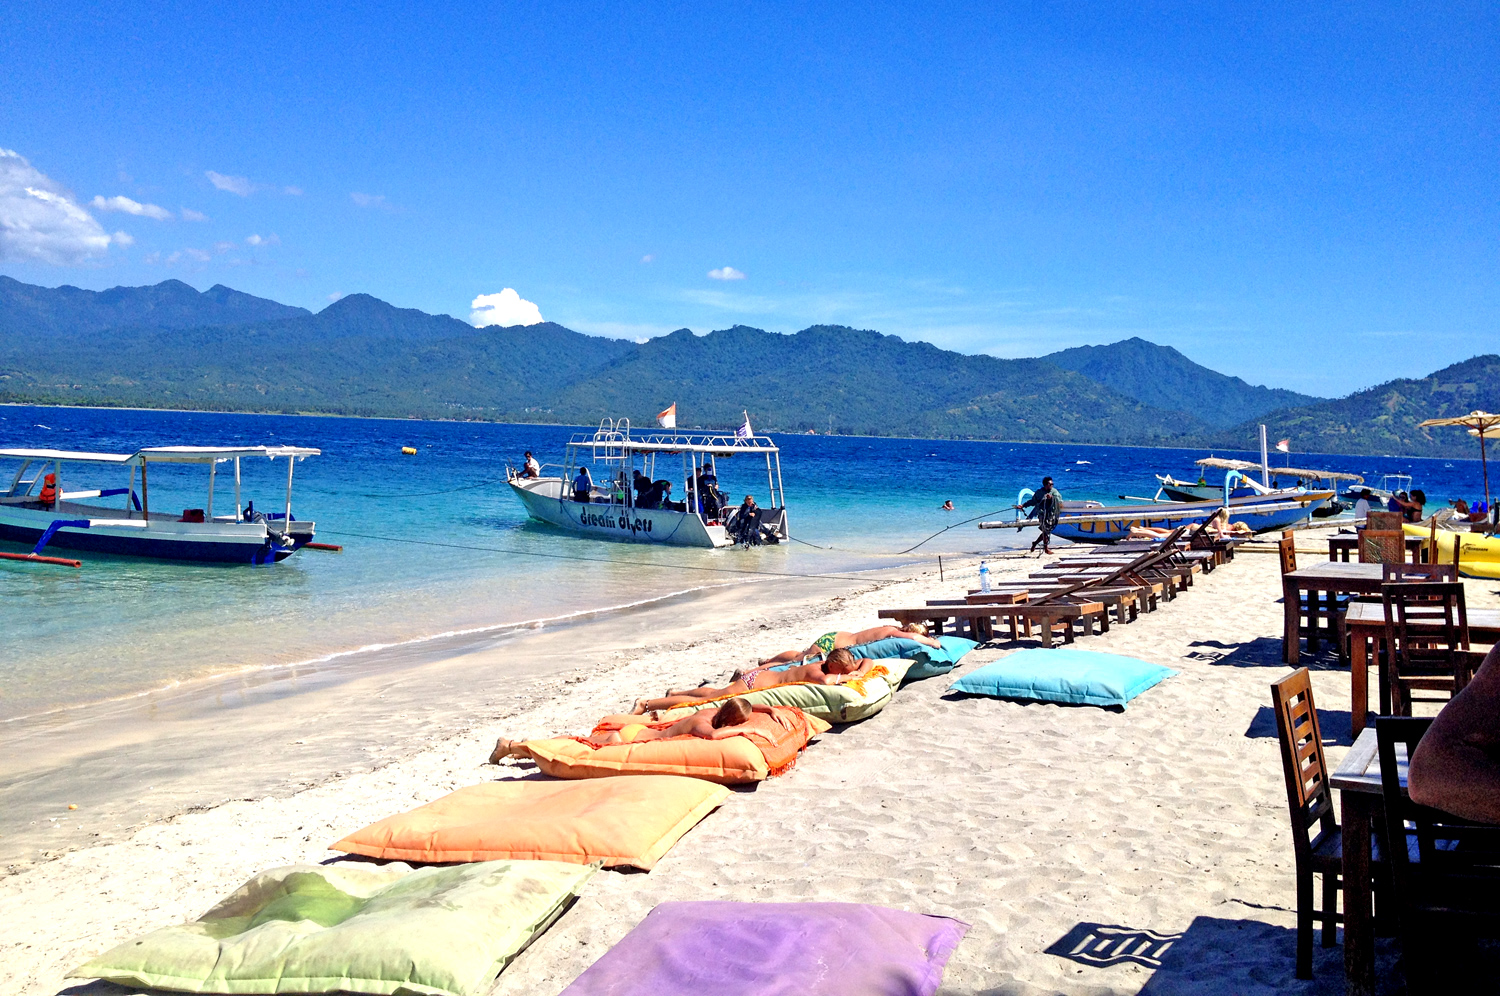 Gili Air, Isole Gili, Lombok, Nusa Tenggara, Indonesia